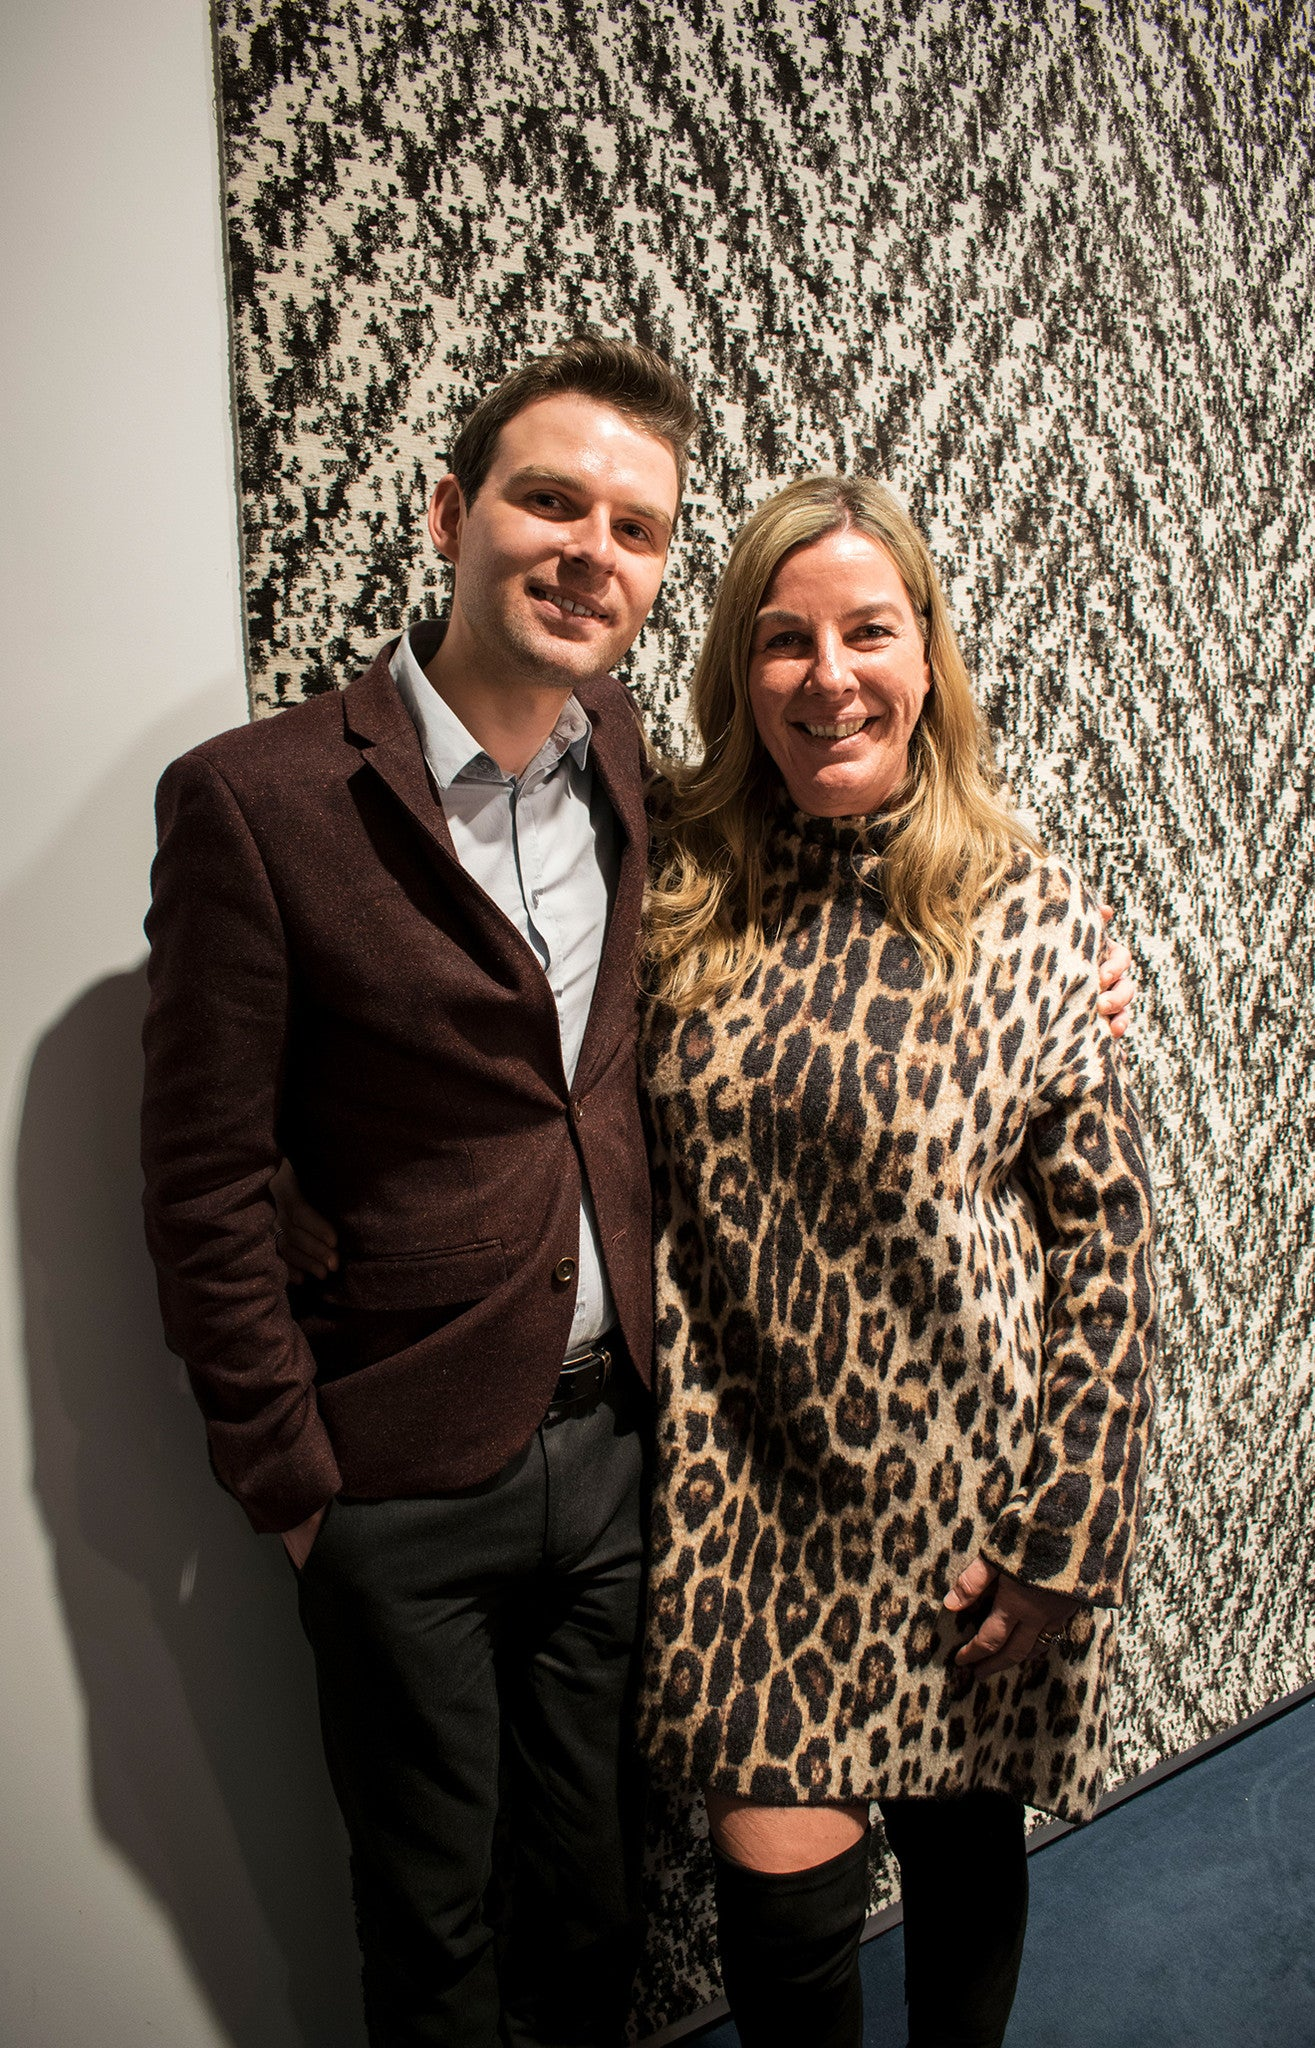 Front Rugs designer Michaela Schleypen and interiors blogger Martyn White